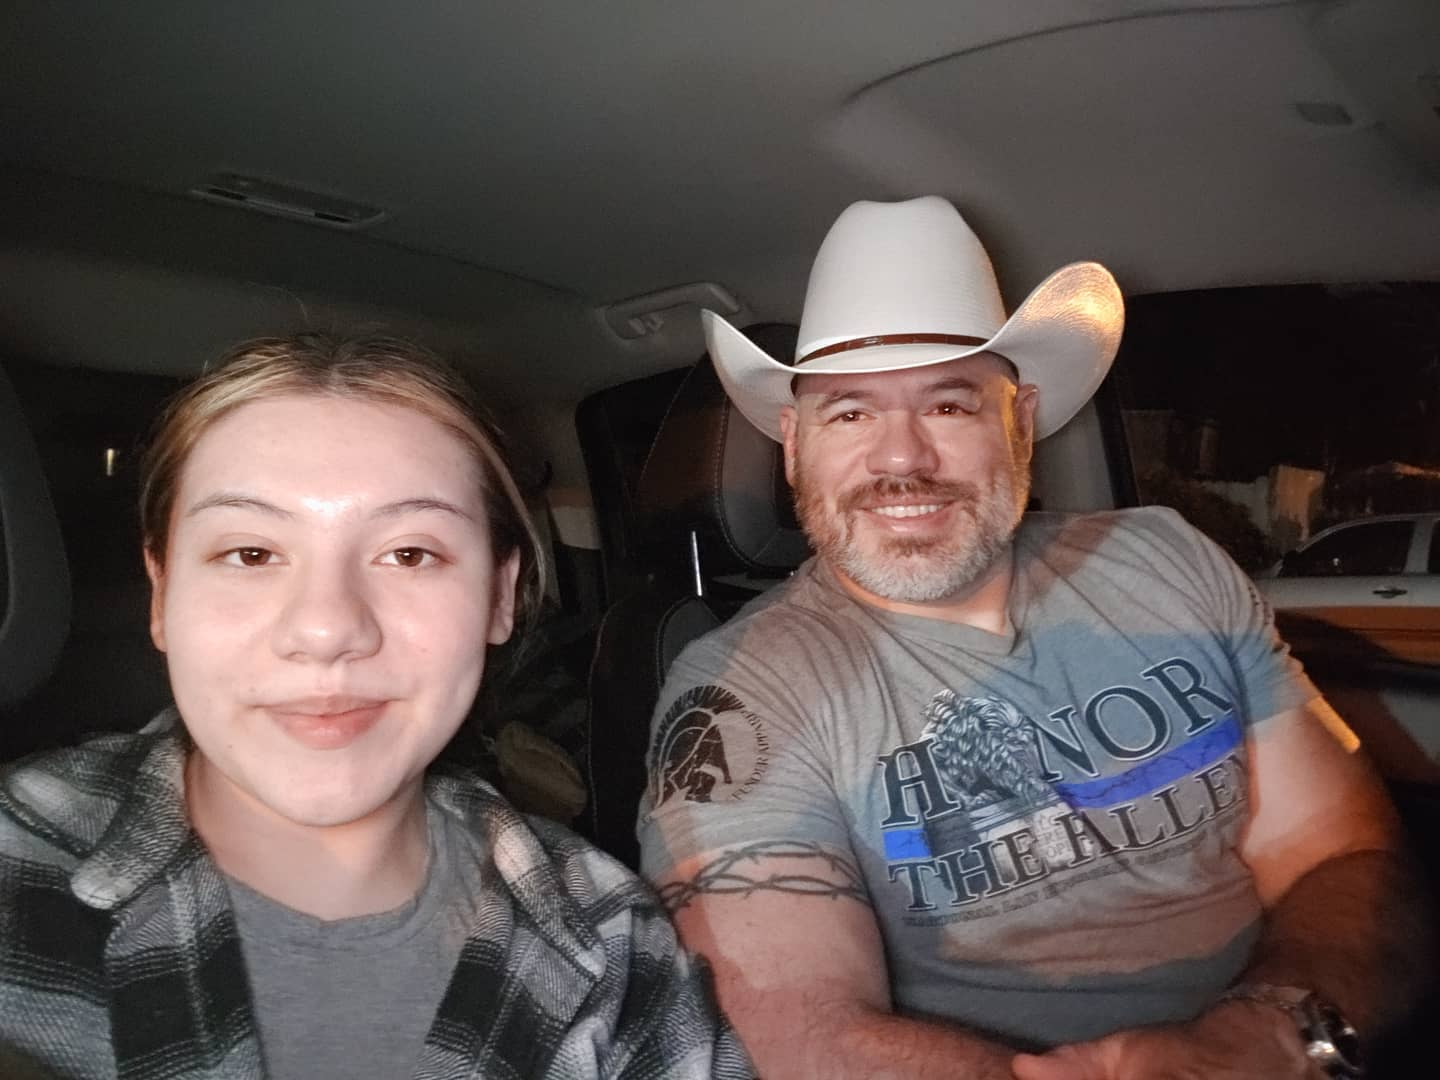 From last November, beginning of the road trip with my daughter to the USPA Drug Tested North American Powerlifting Championships. relentless_defender #fatherdaughter #daughtersarethebest #familytime #familyiseverything #family #blessed #thinbluelinesfinest #thinbluelinefamily #thinblueline #blessed🙏 #blessedlife #godblesstheusa #relentlessdefenderapparel #relentlessdefender